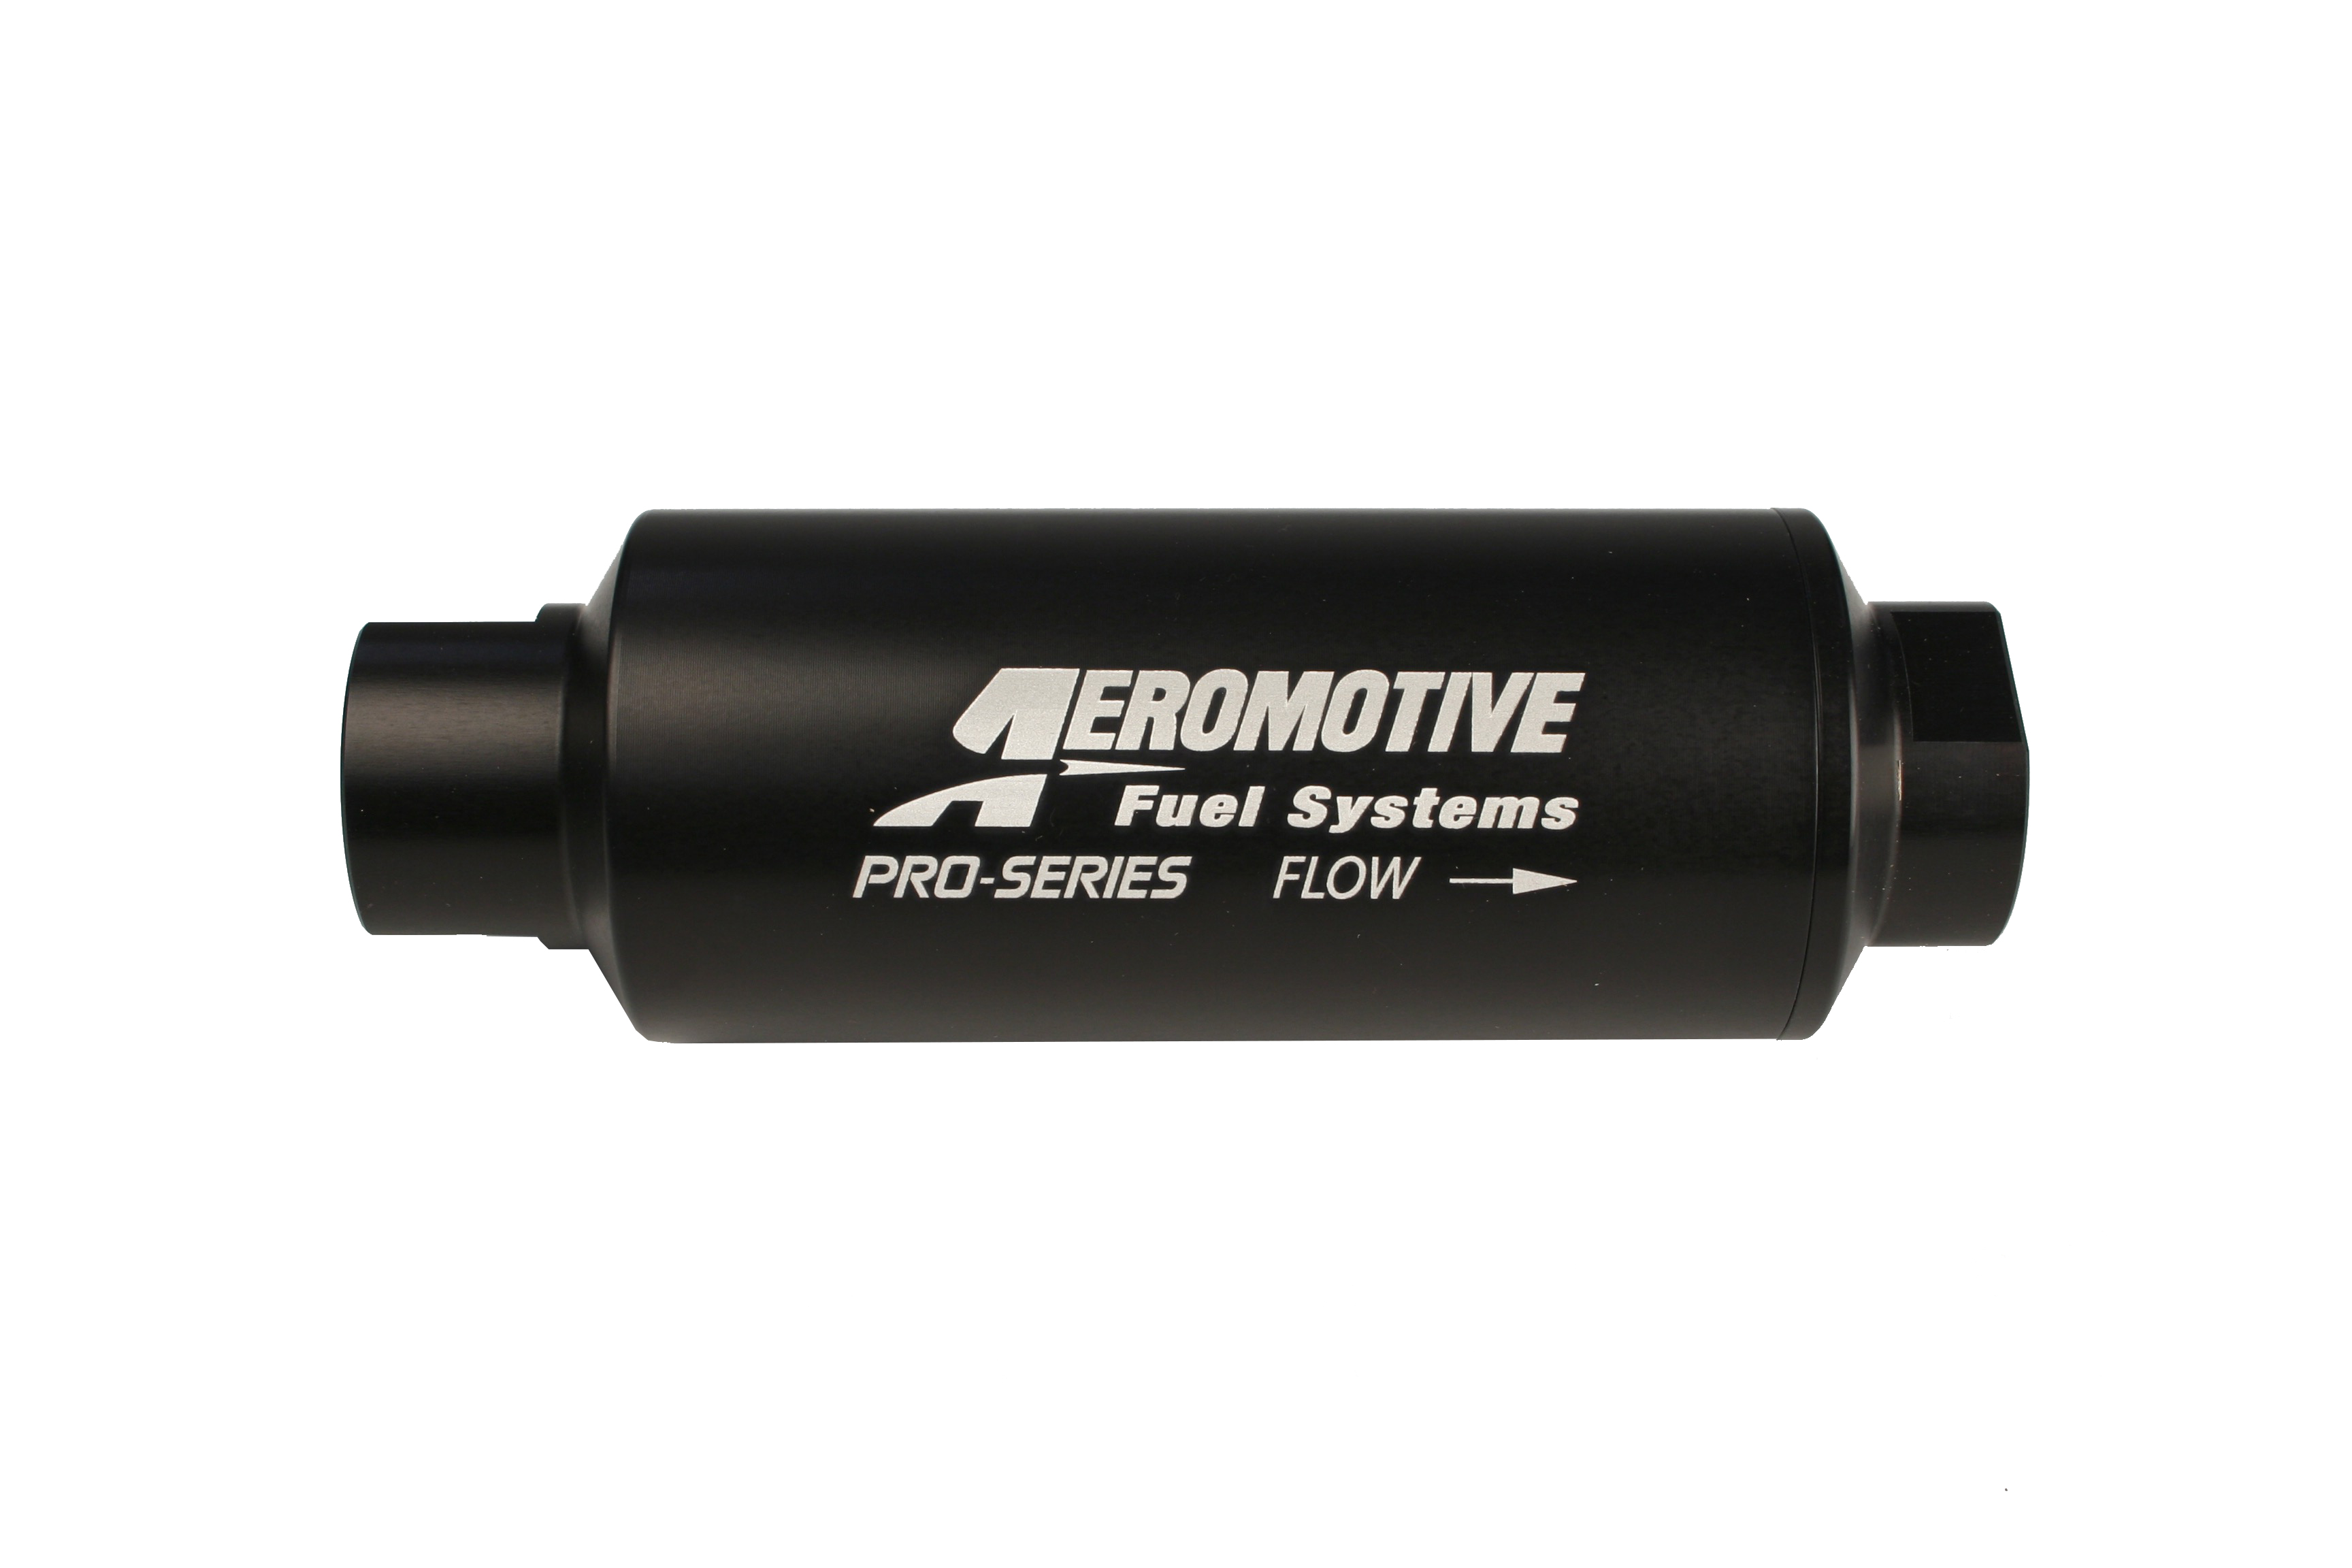 Pro-Series 10-m Fabric, AN-12 ORB Fuel Filter - Aeromotive, Inc | Aeromotive Fuel Filter |  | Aeromotive, Inc